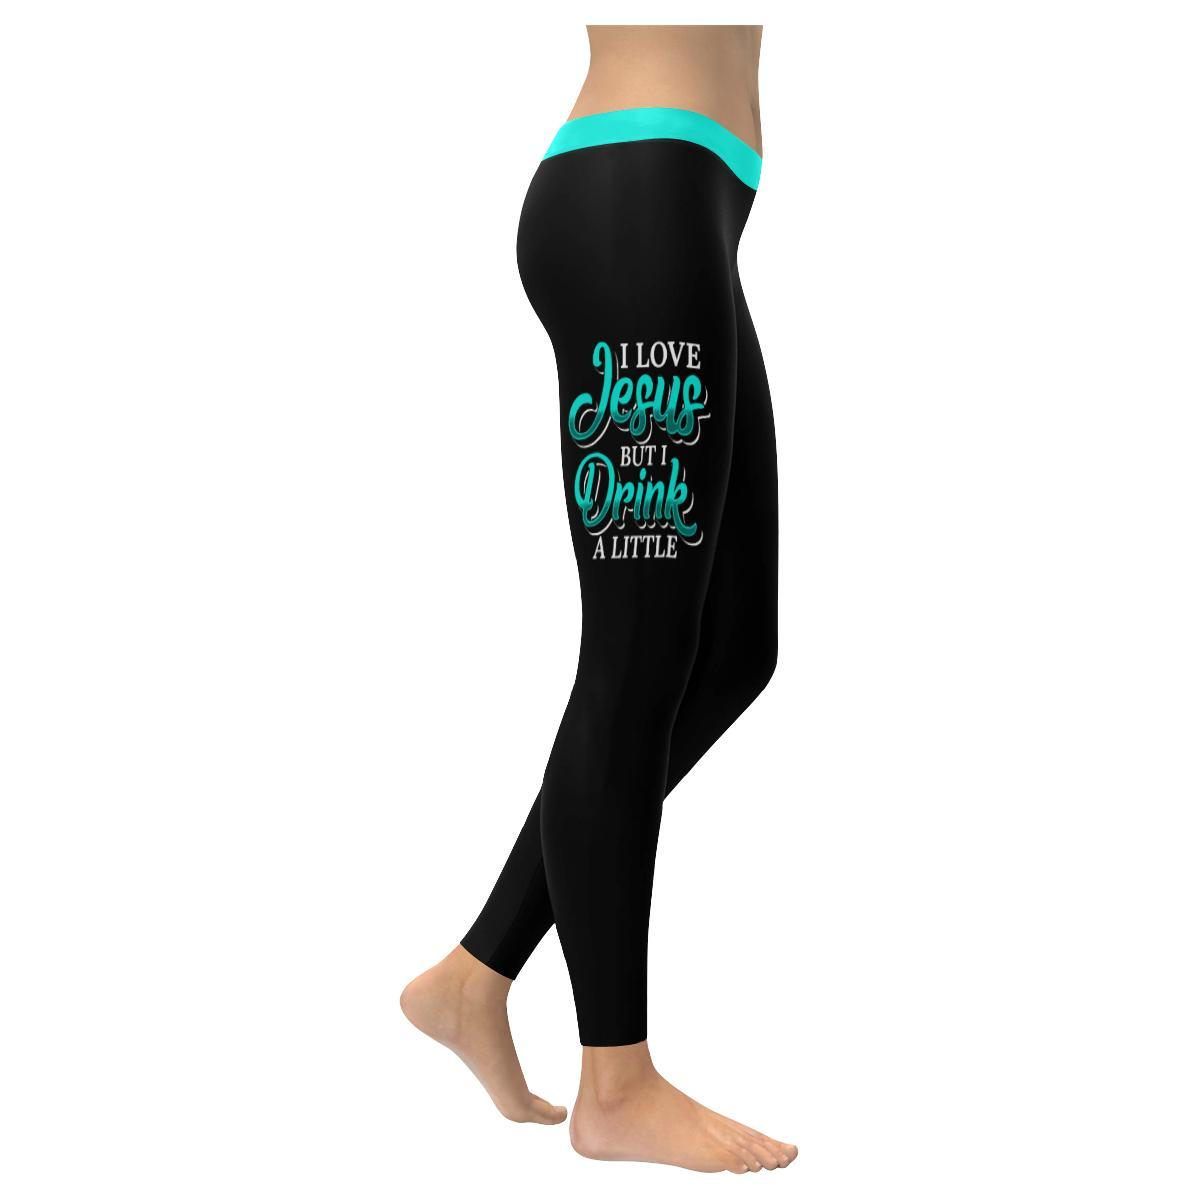 I Love Jesus But I Drink A Little Soft Leggings For Women Cute Funny Christian-XXS-Black-JoyHip.Com